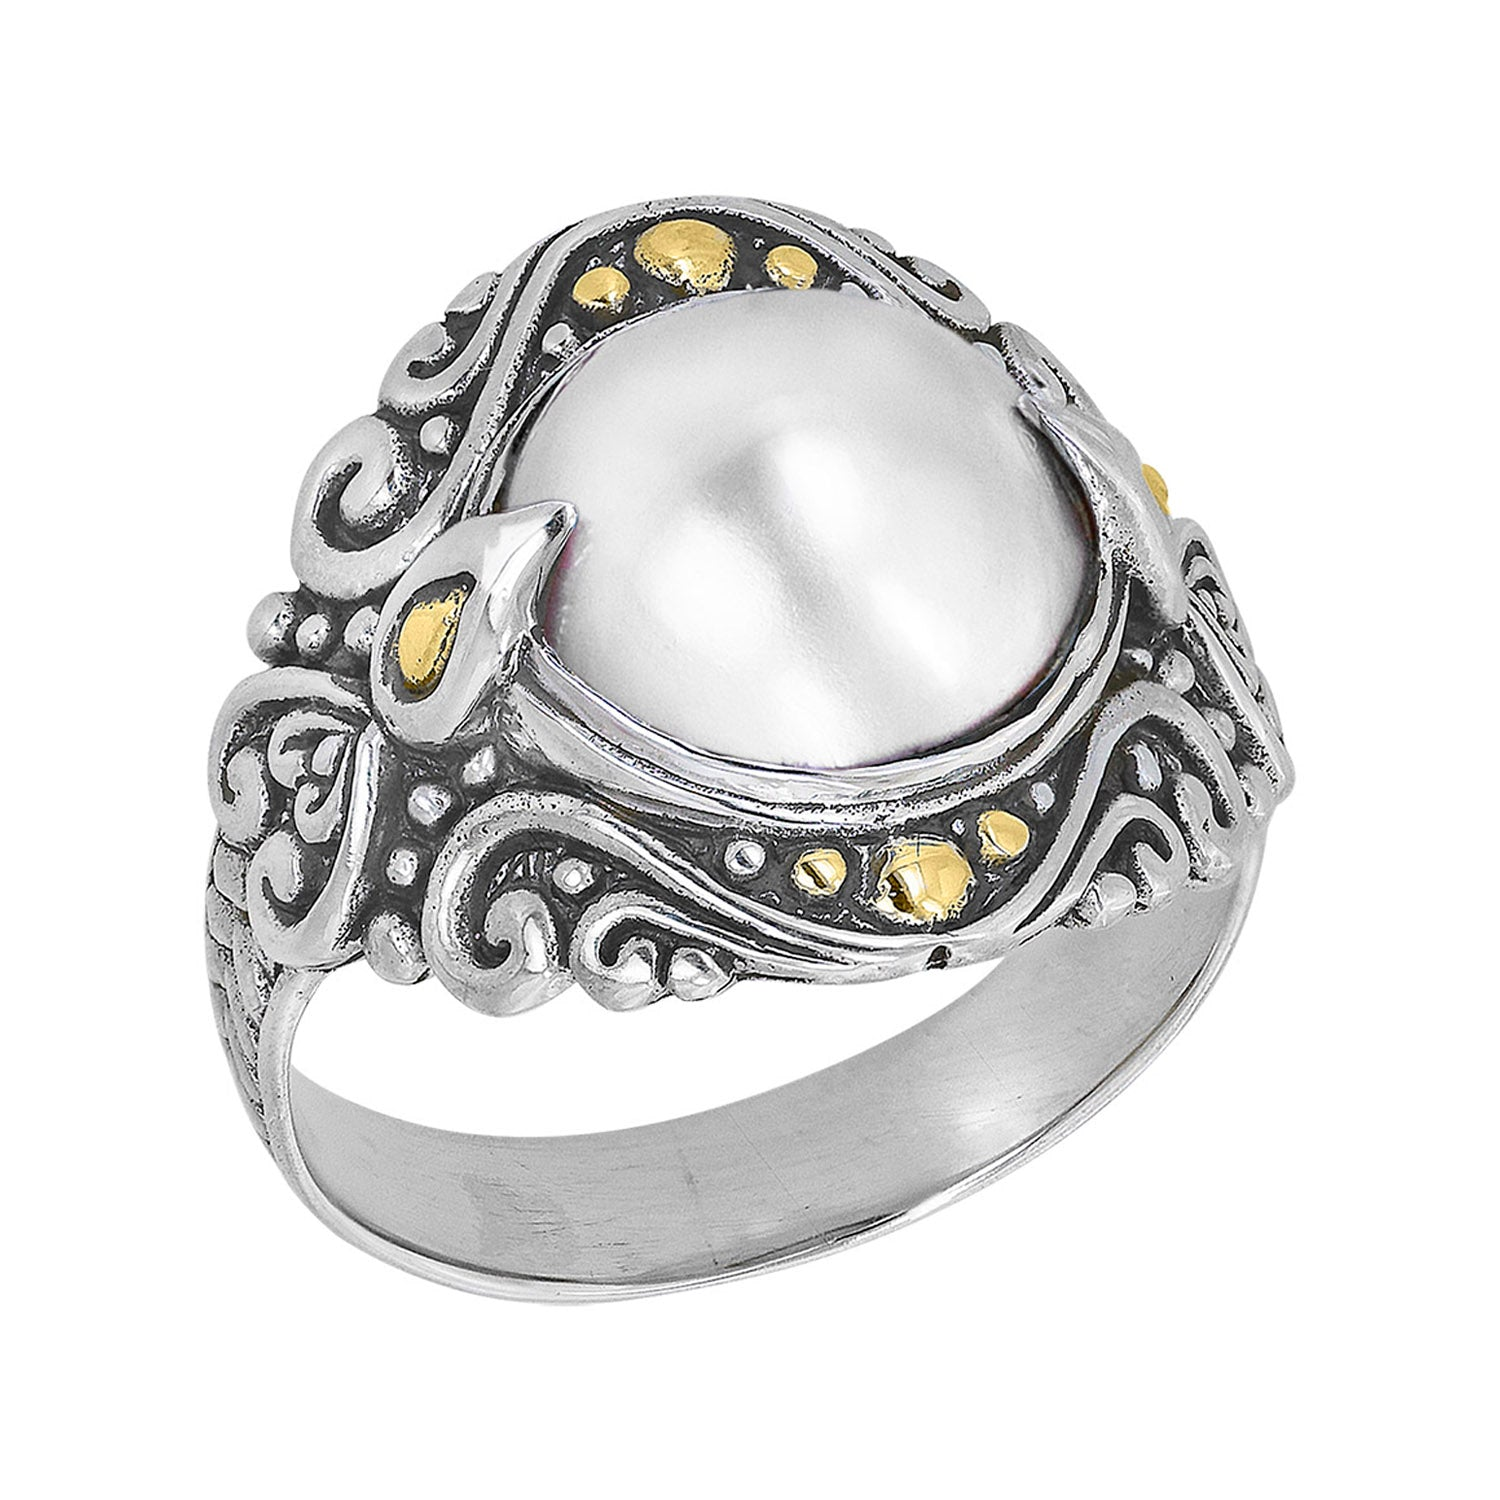 Sterling silver scroll work pearl ring with 18k gold accents